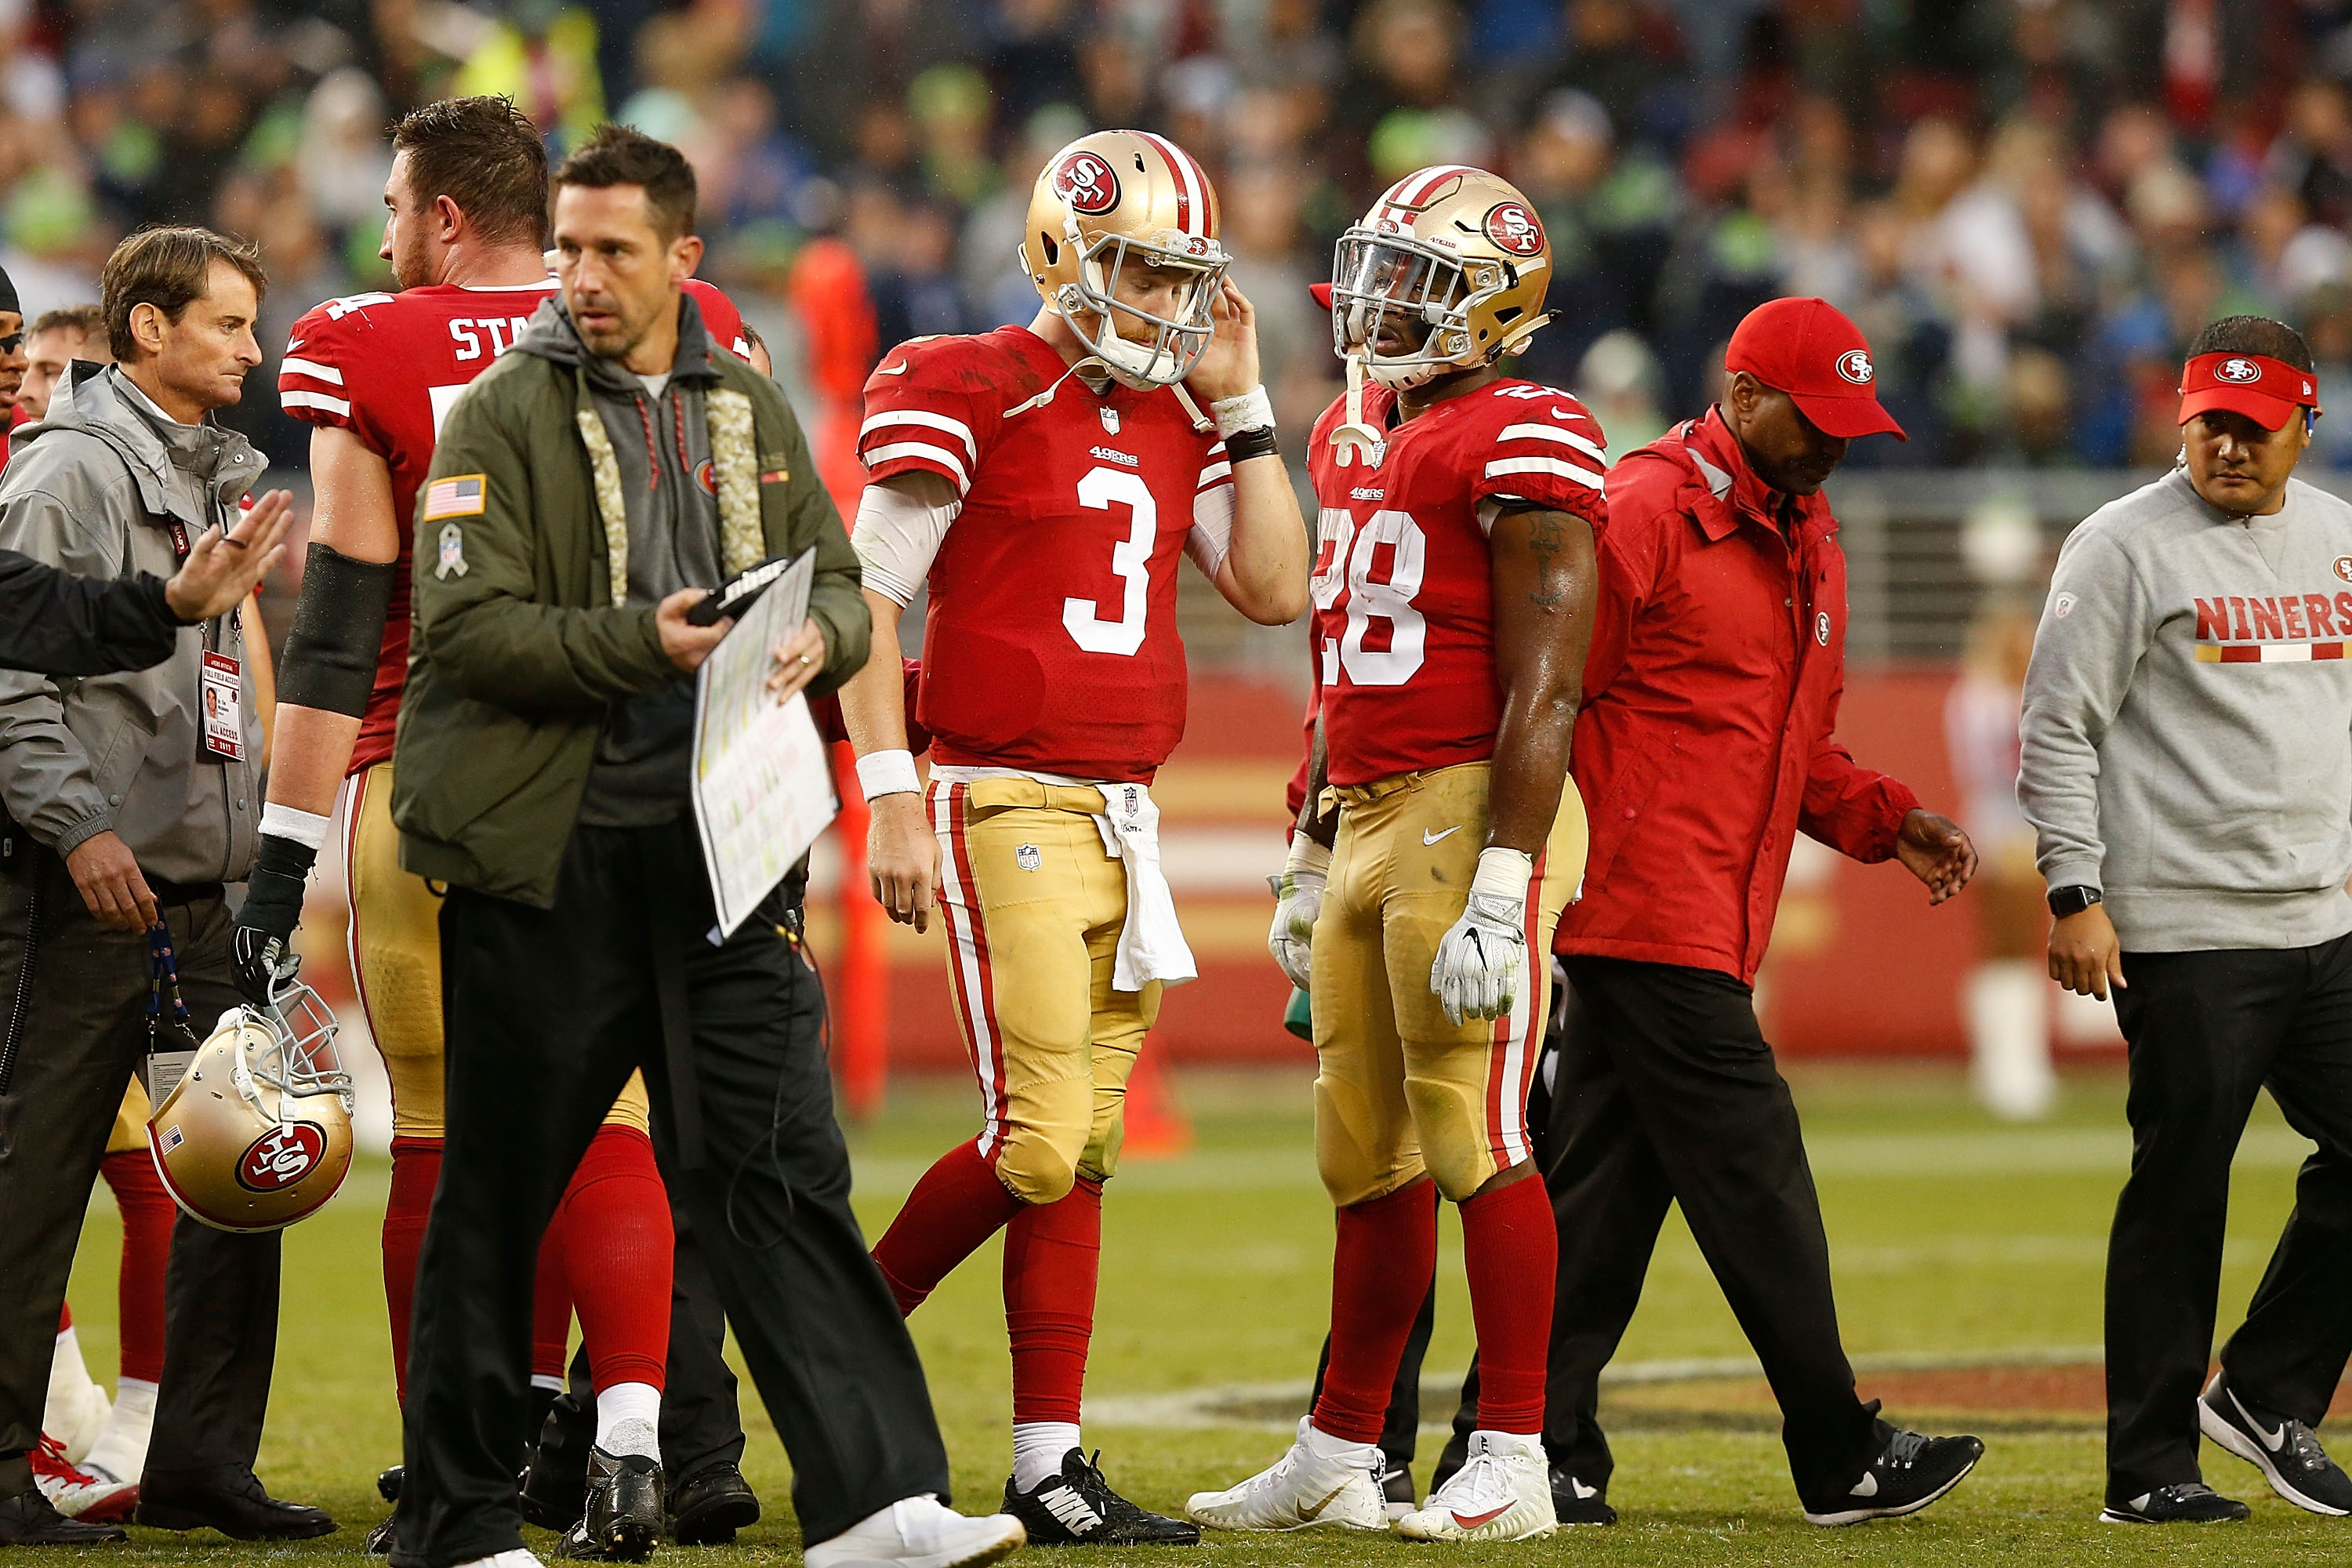 Escape artist: 49ers still finding Wilson, win over Seahawks, elusive